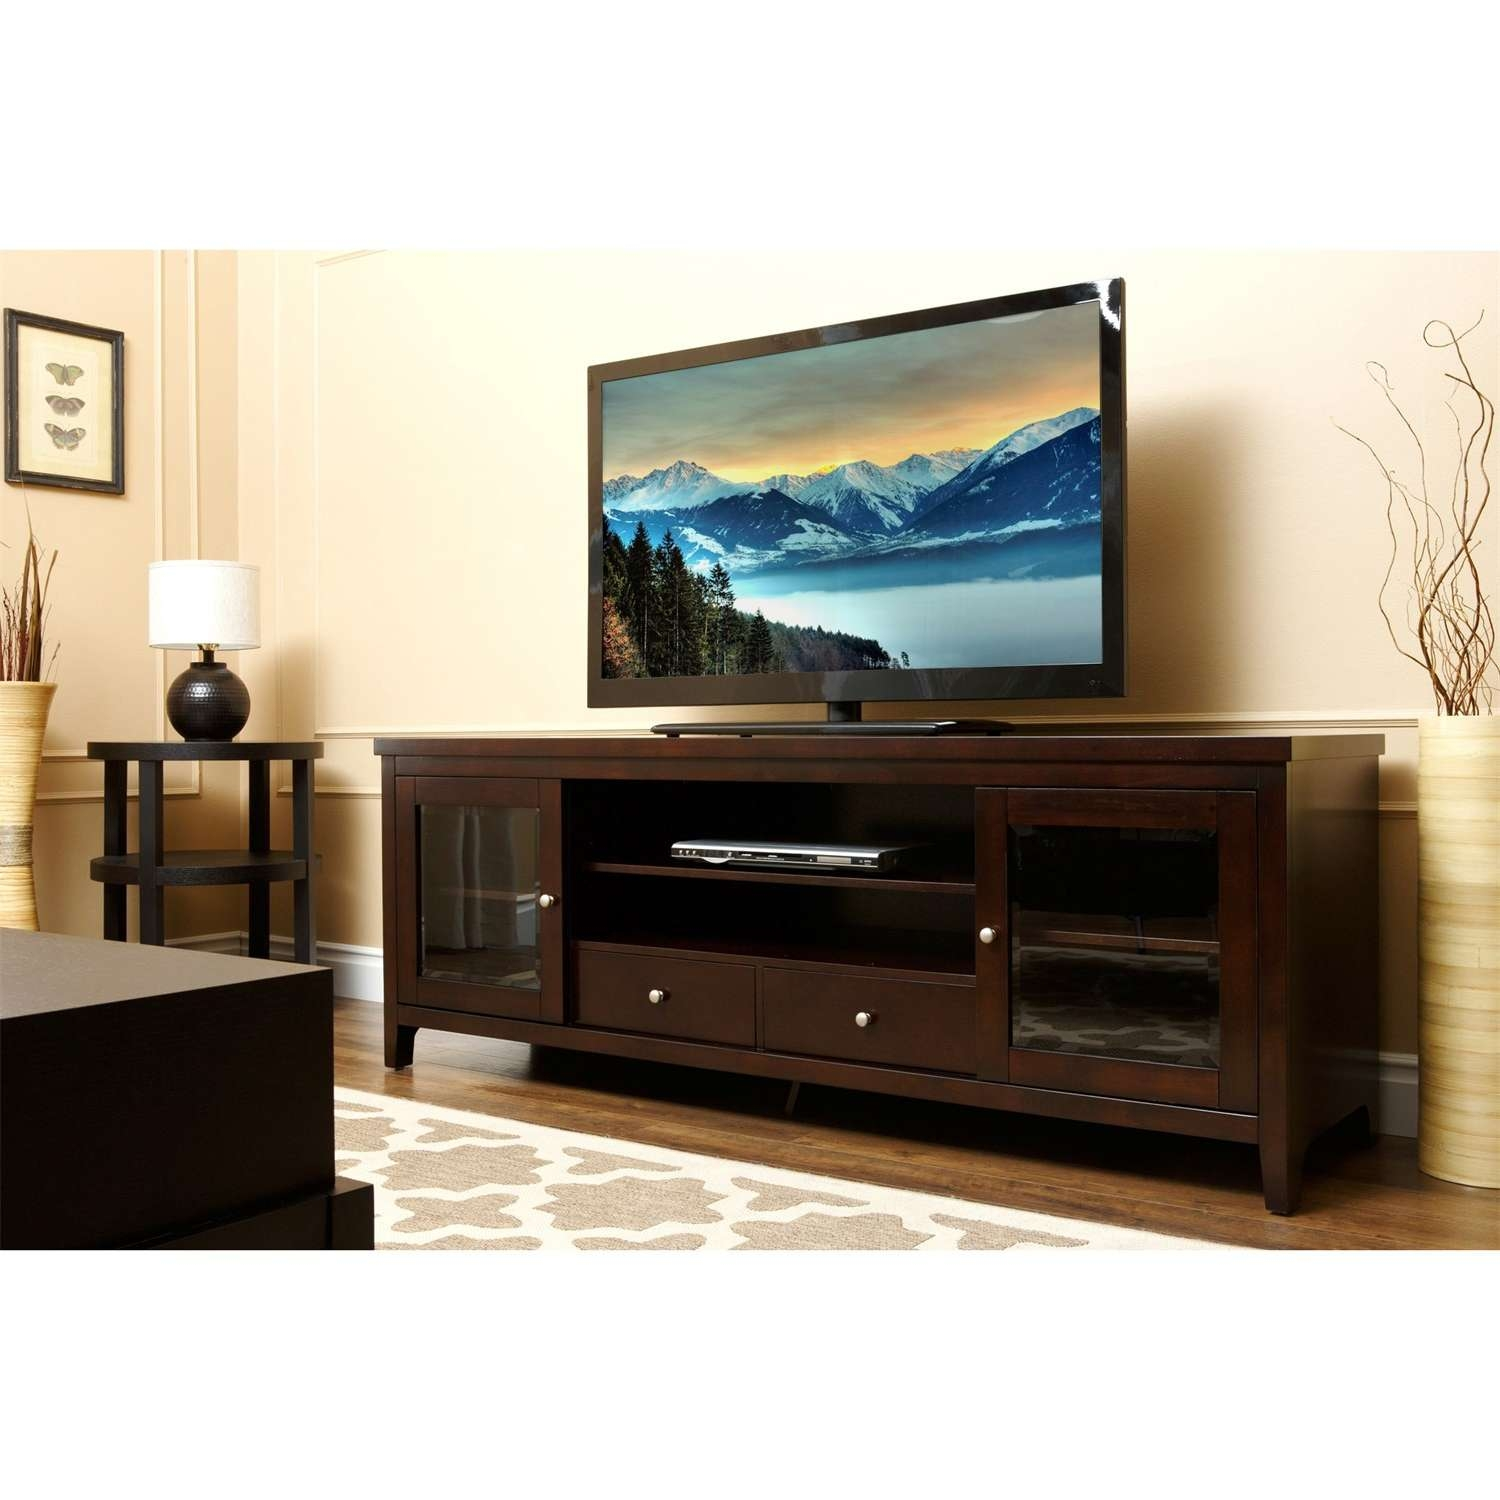 Elegant Espresso Tv Stands 62 For Home Improvement Ideas With Regarding Expresso Tv Stands (View 3 of 15)